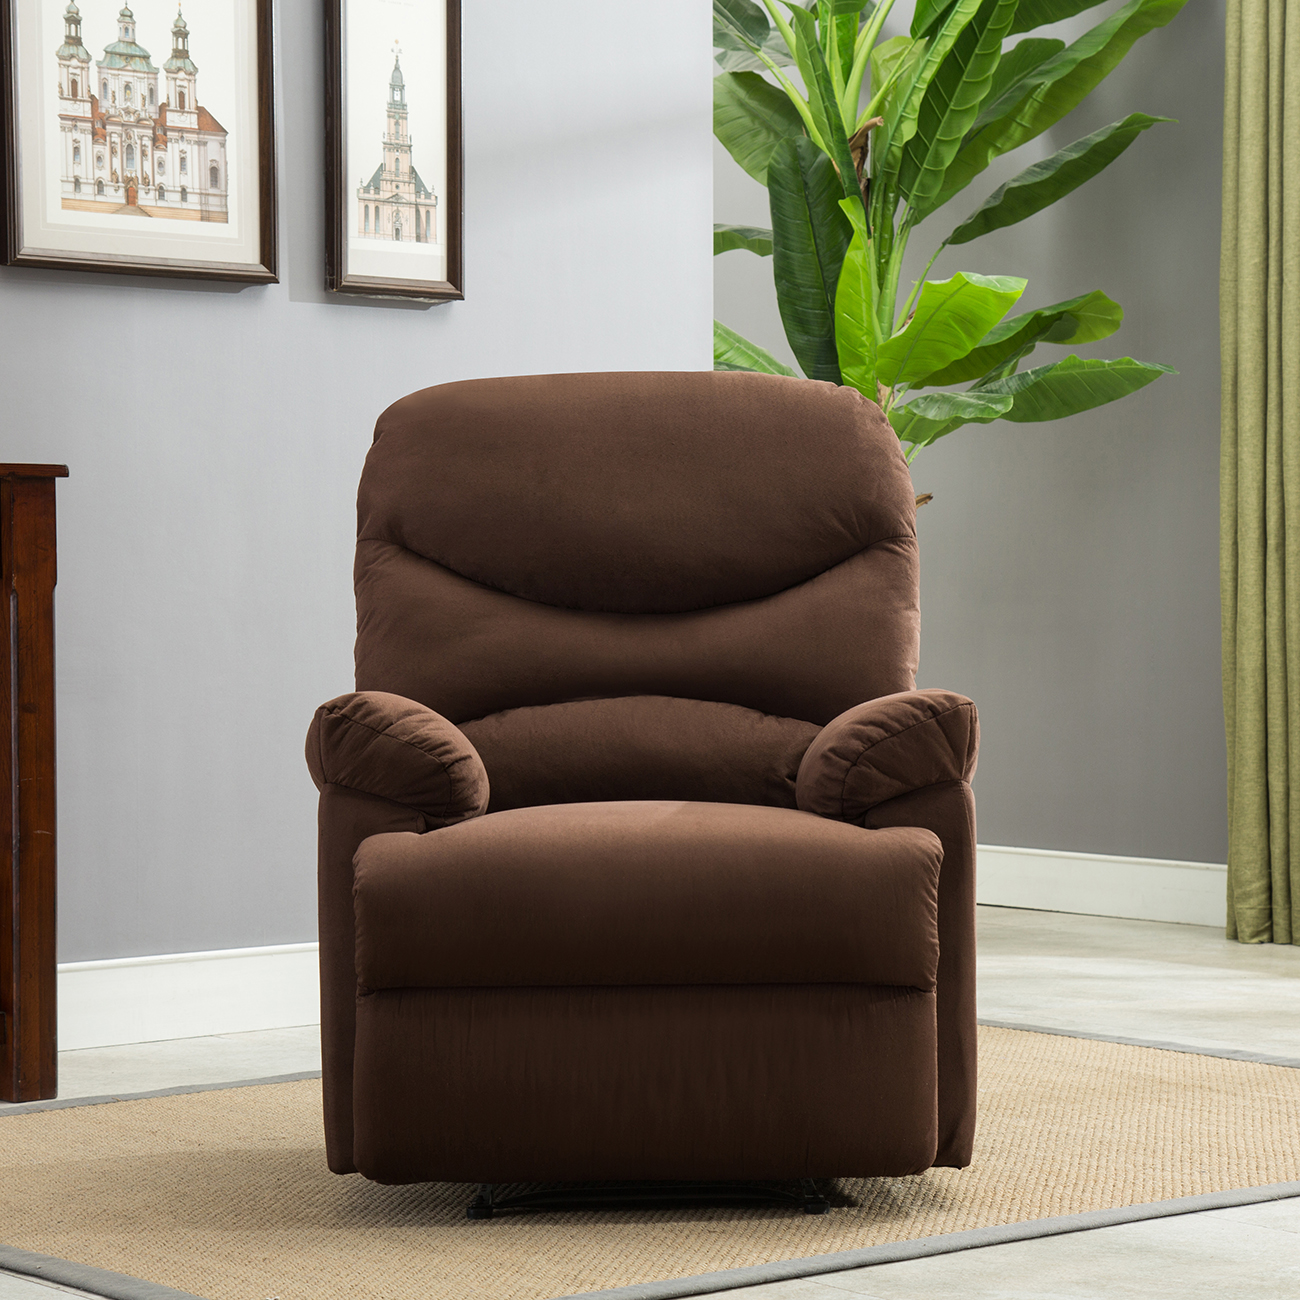 Recliner Chair Microfiber Living Room Furniture Reclining Home Seat, Brown